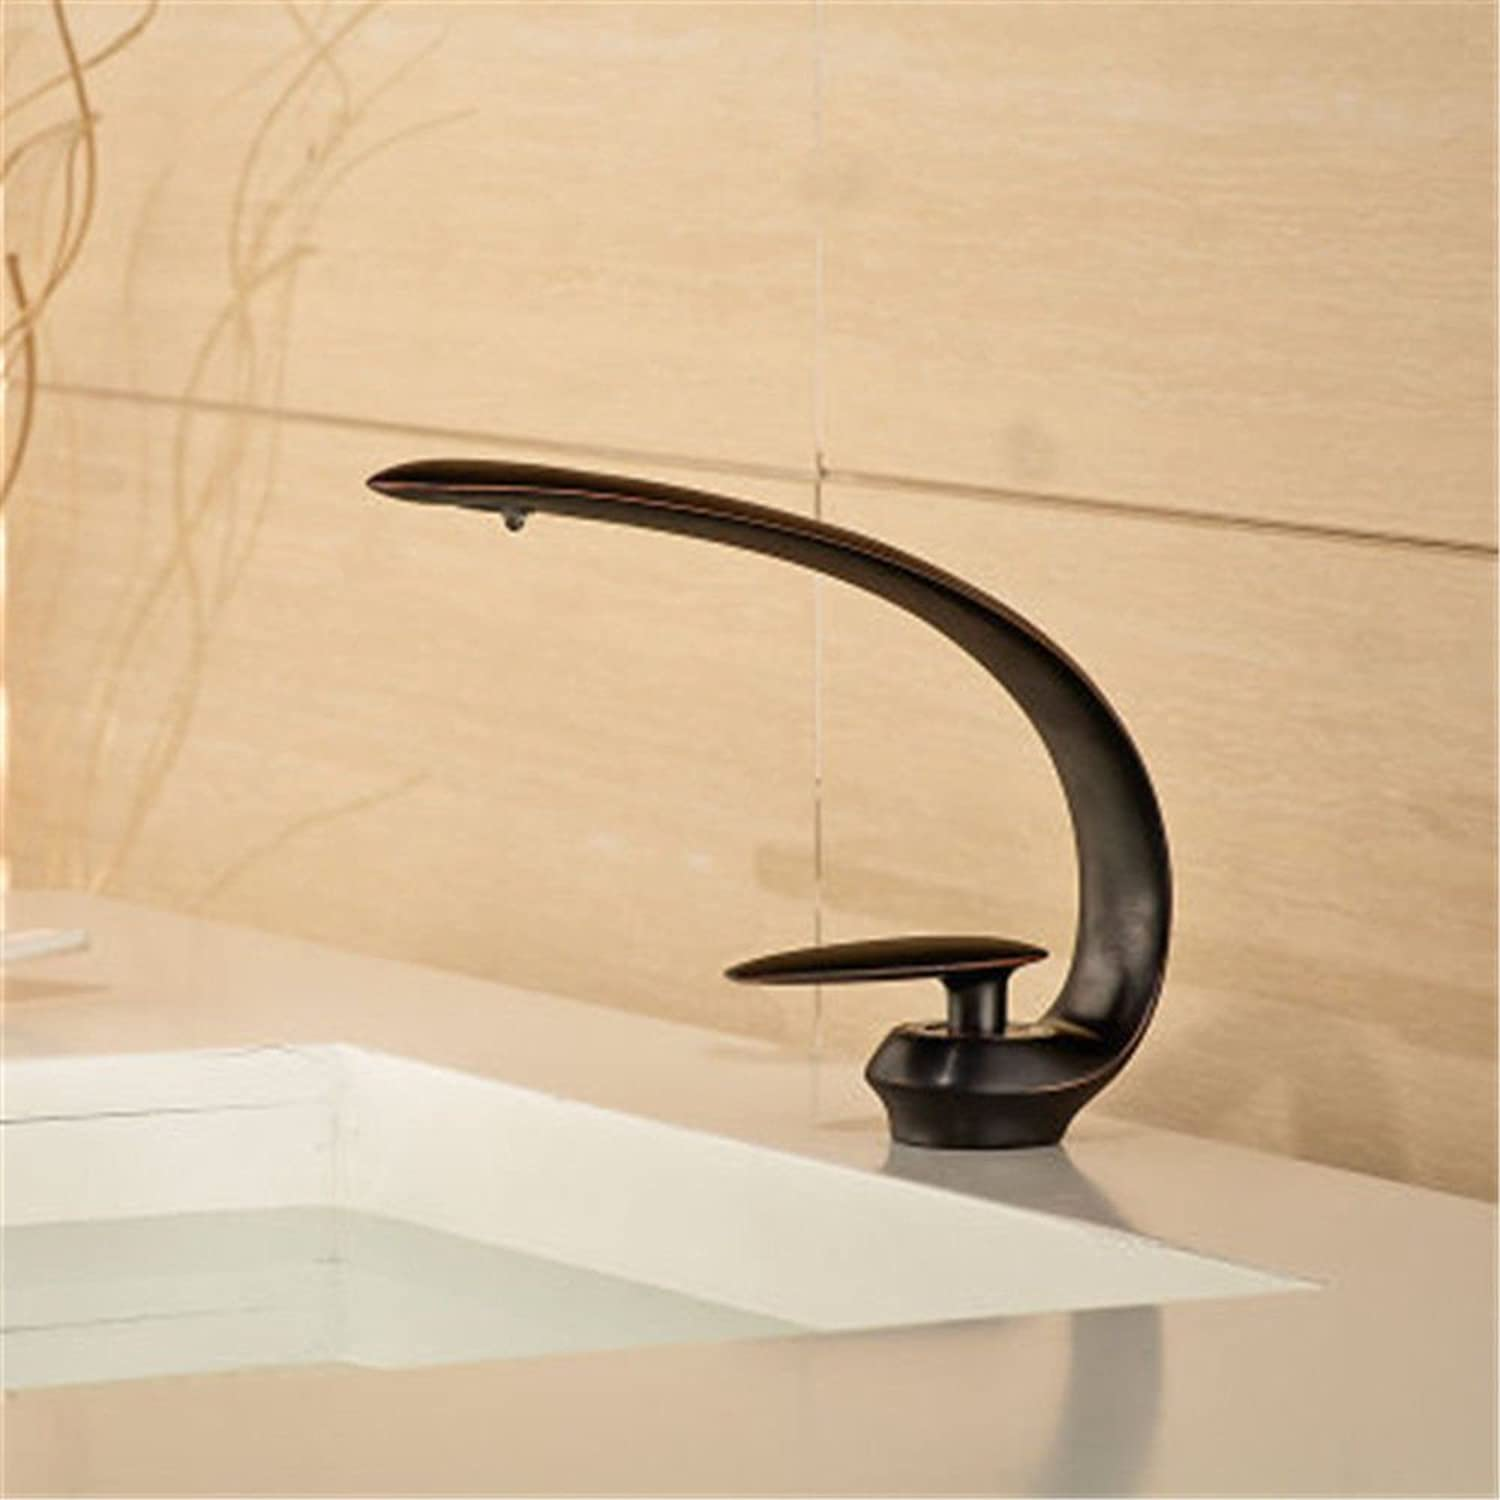 Gyps Faucet Single Lever Washbasin Mixer Tap Black Antique Tap Hot and Cold Basin Black Tap Washbasin Tap Flat Nozzle Waterfall Tap B